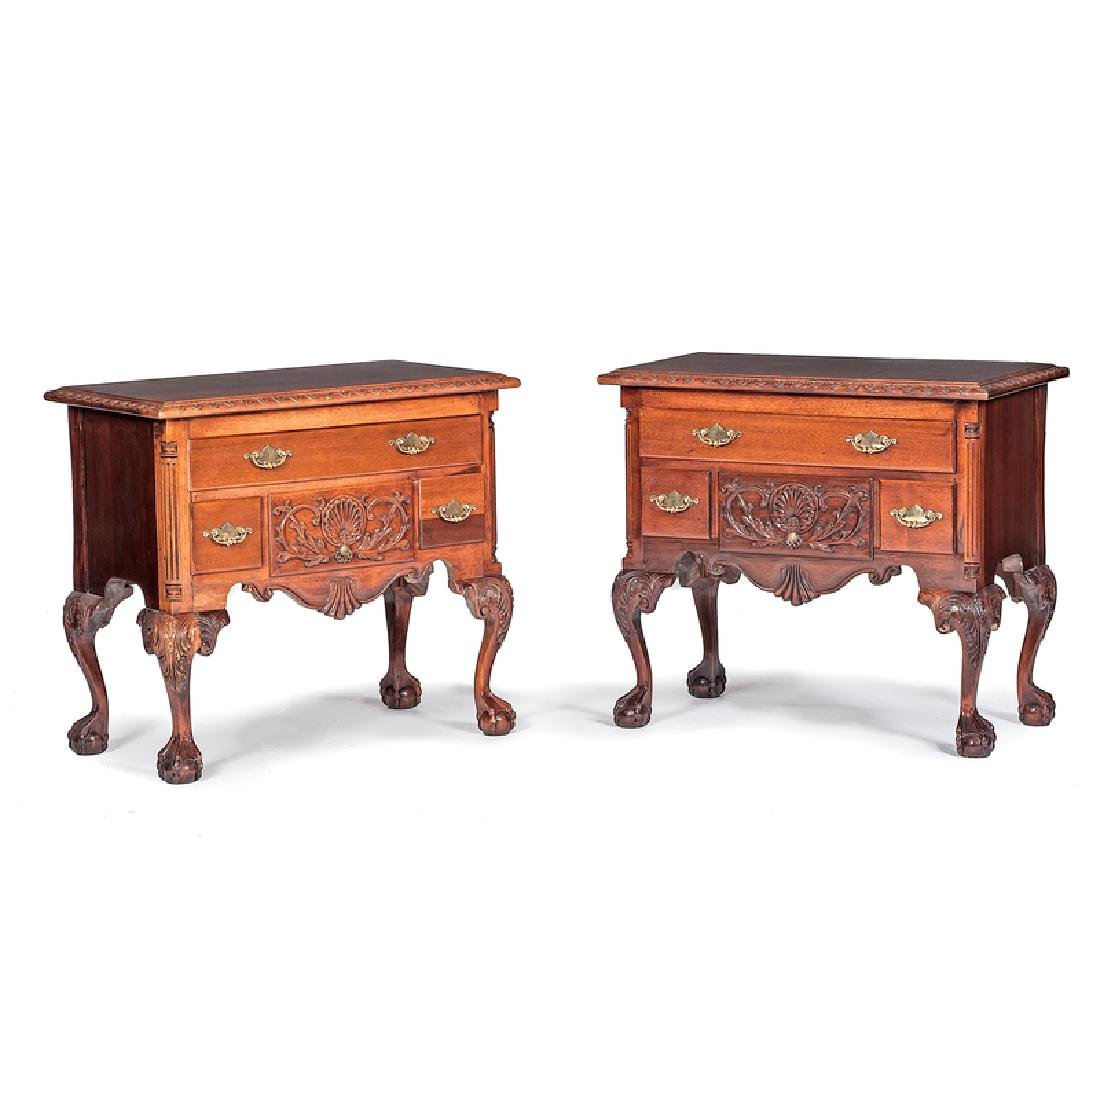 Chippendale-style Dressing Tables